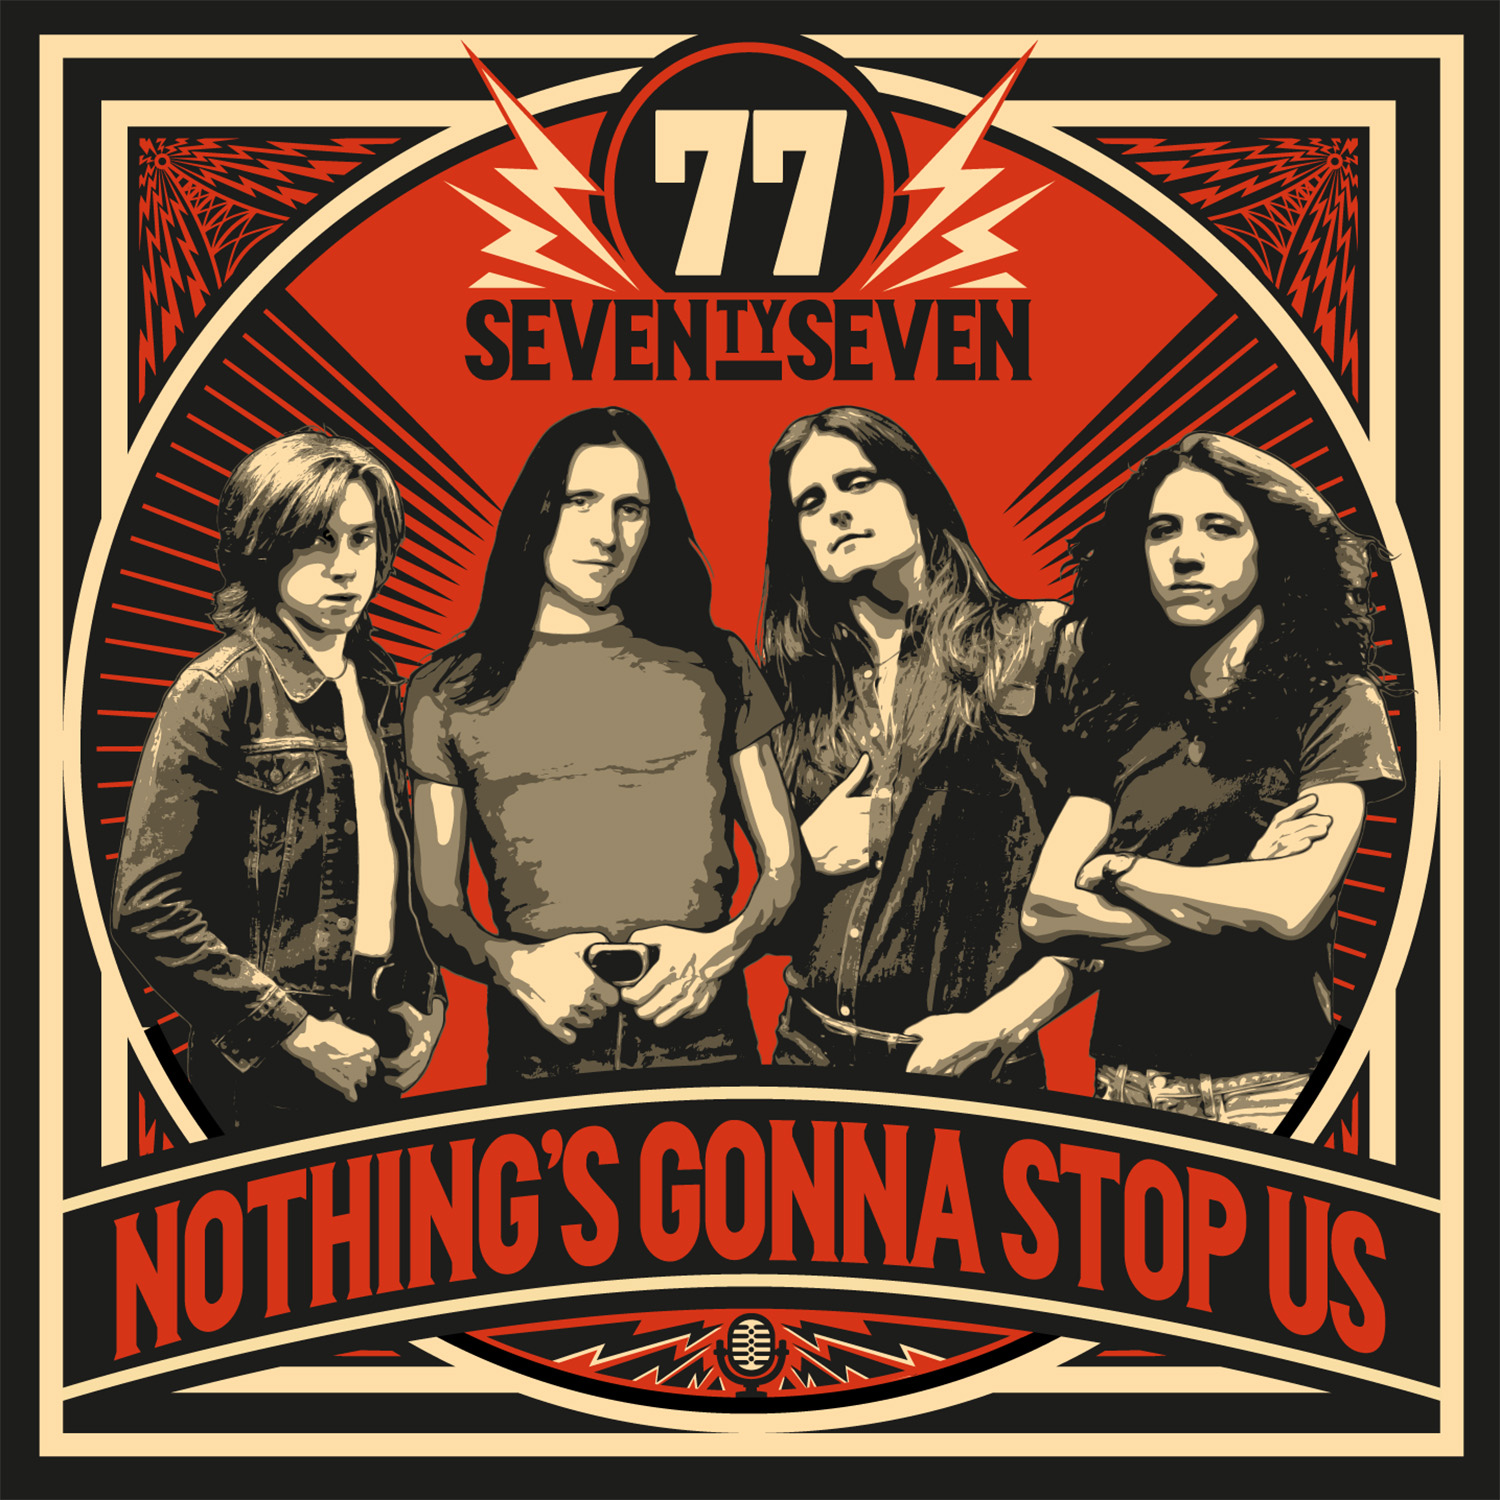 ¿Qué Estás Escuchando? - Página 4 77-Nothings-Gonna-Stop-Us